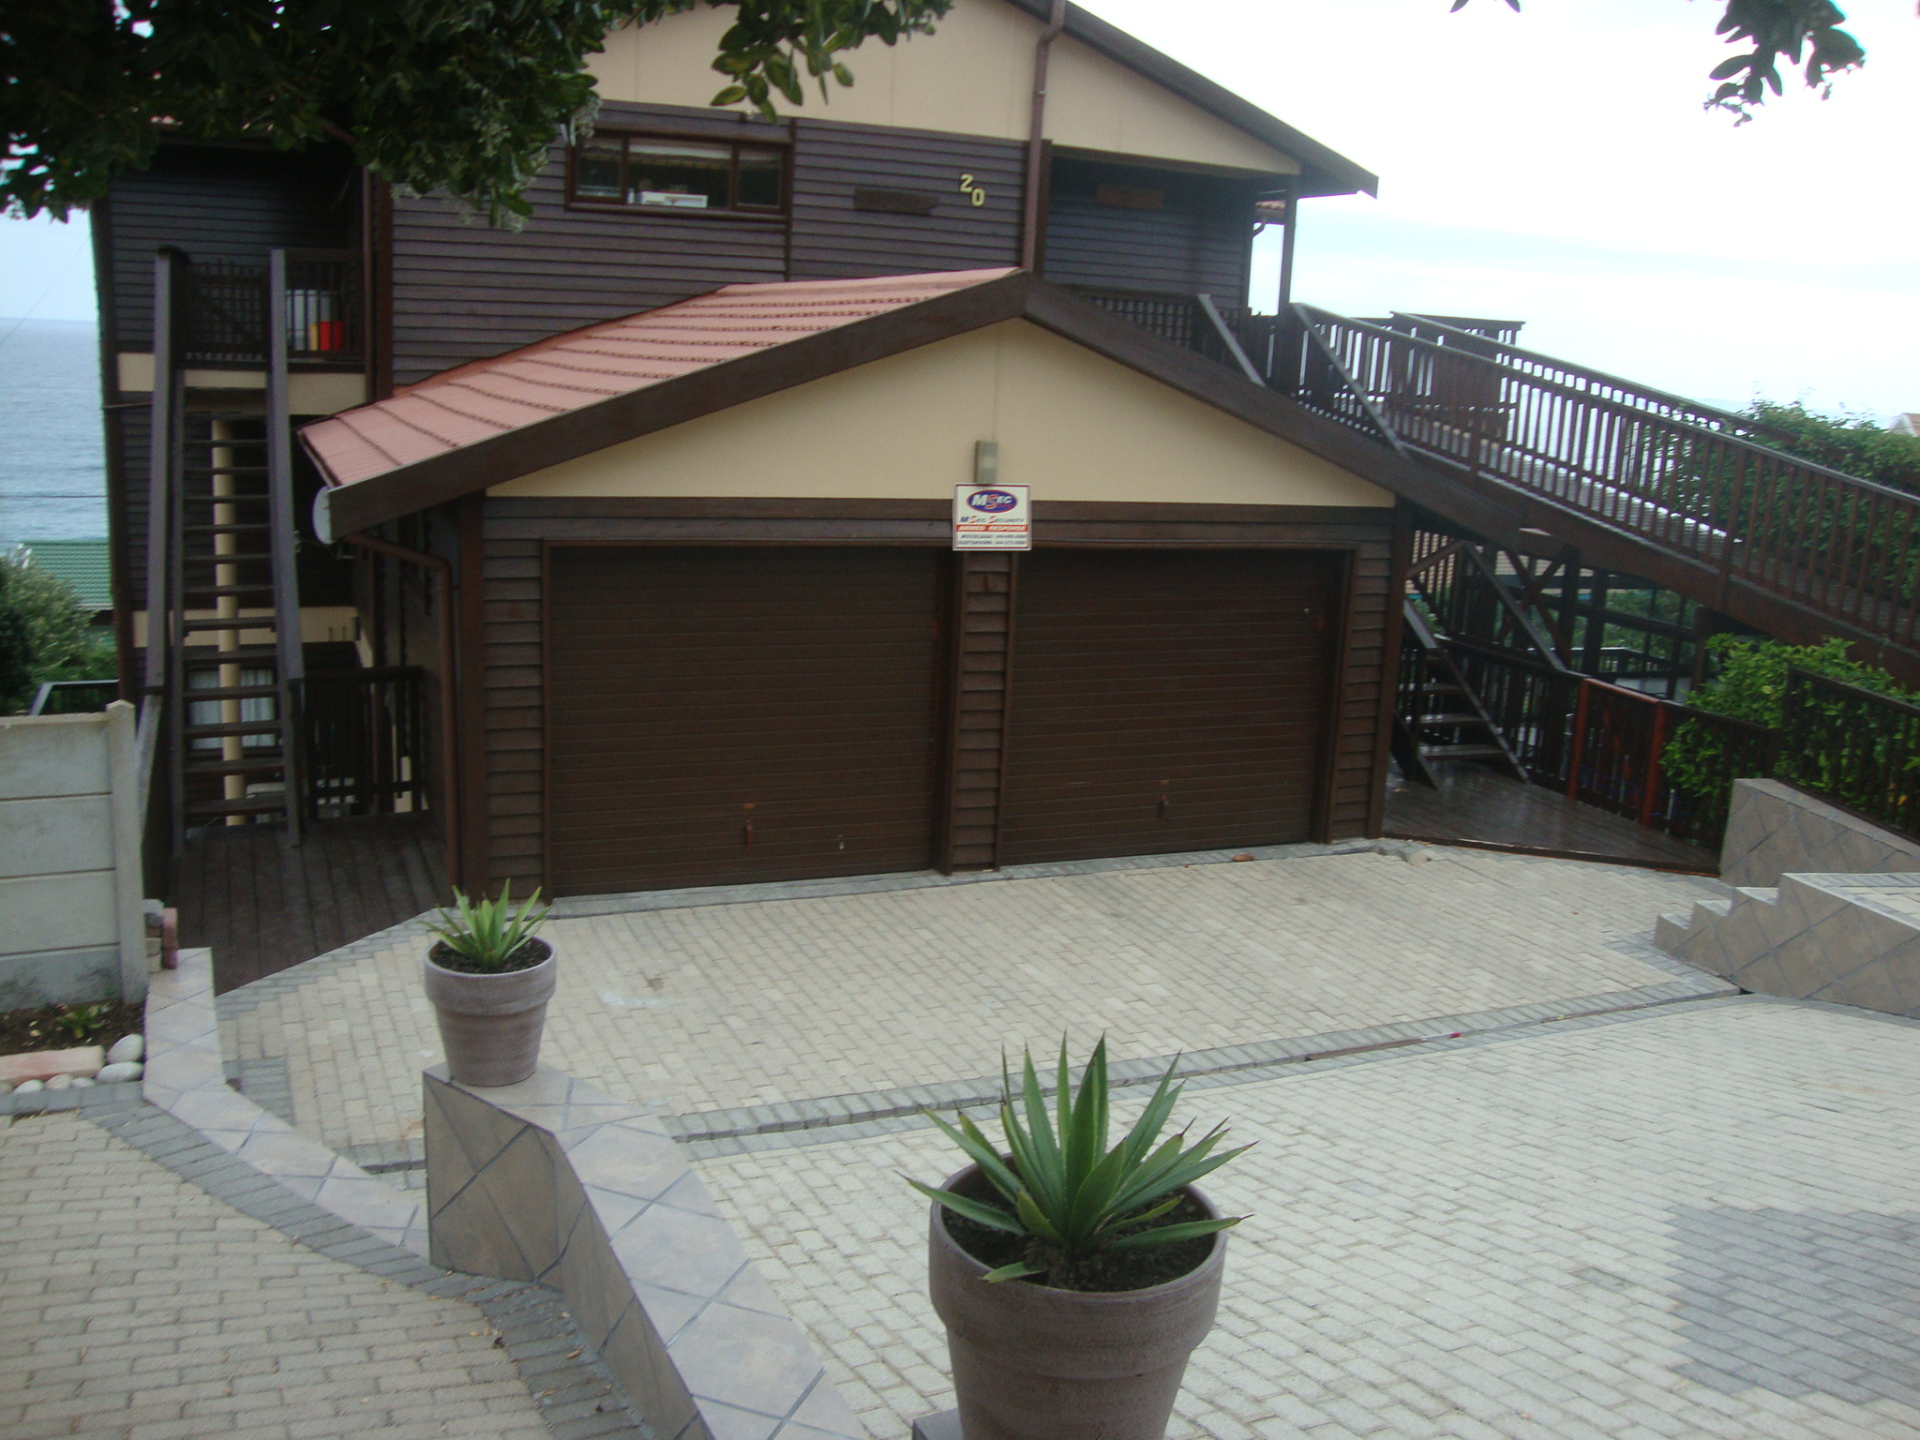 affordable accommodation in the Garden Route